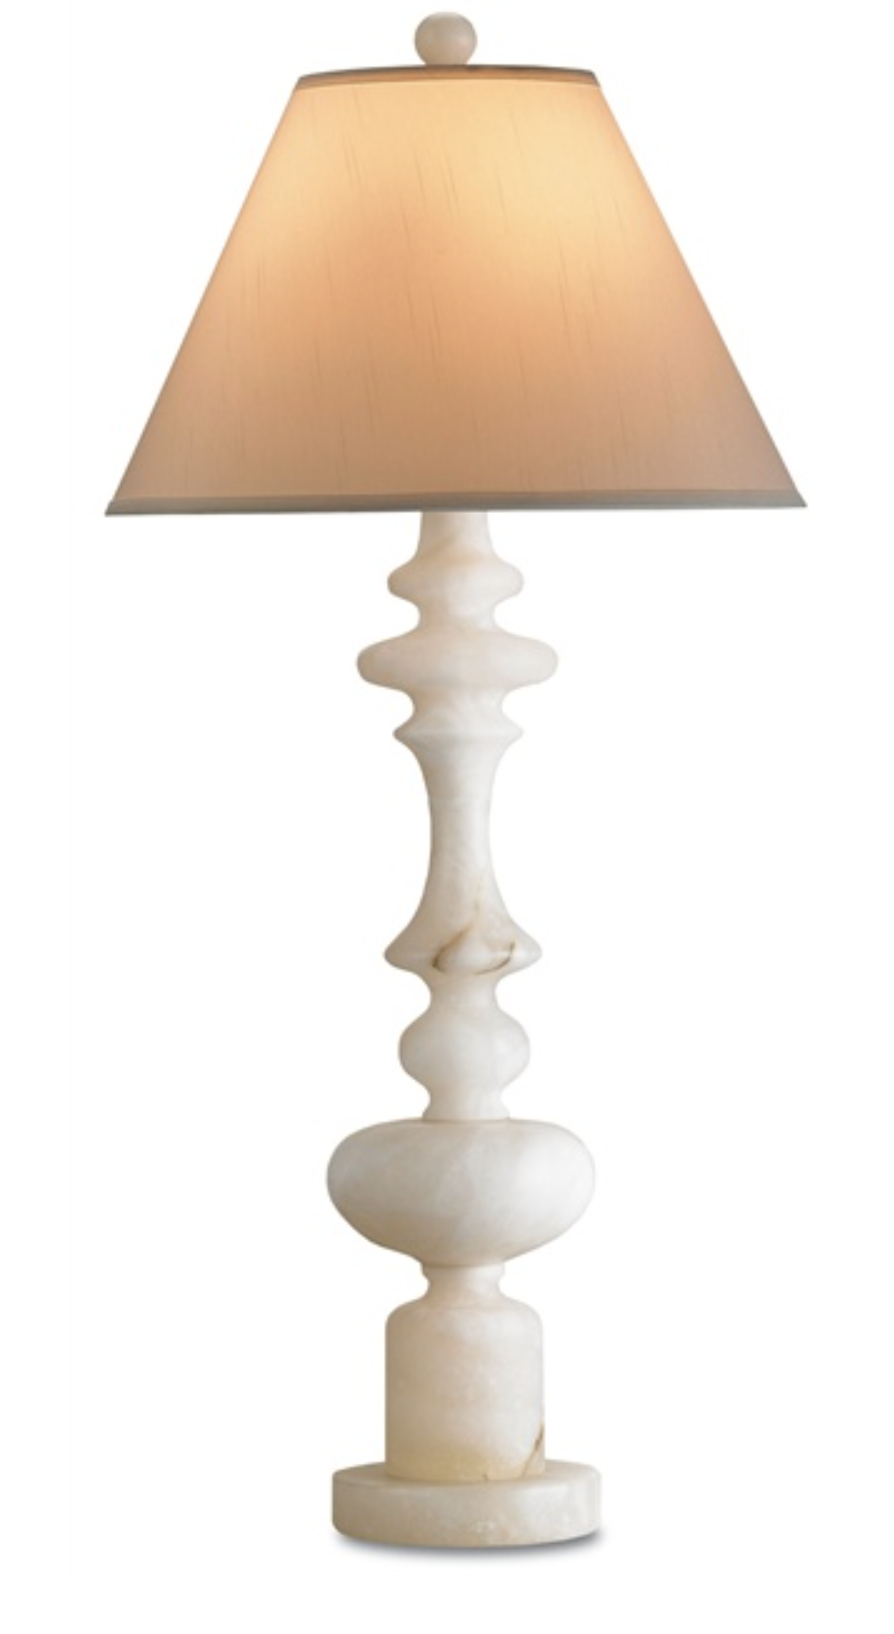 Alabaster Table Lamp w/Silk Shade  17.5x38h  CC6294